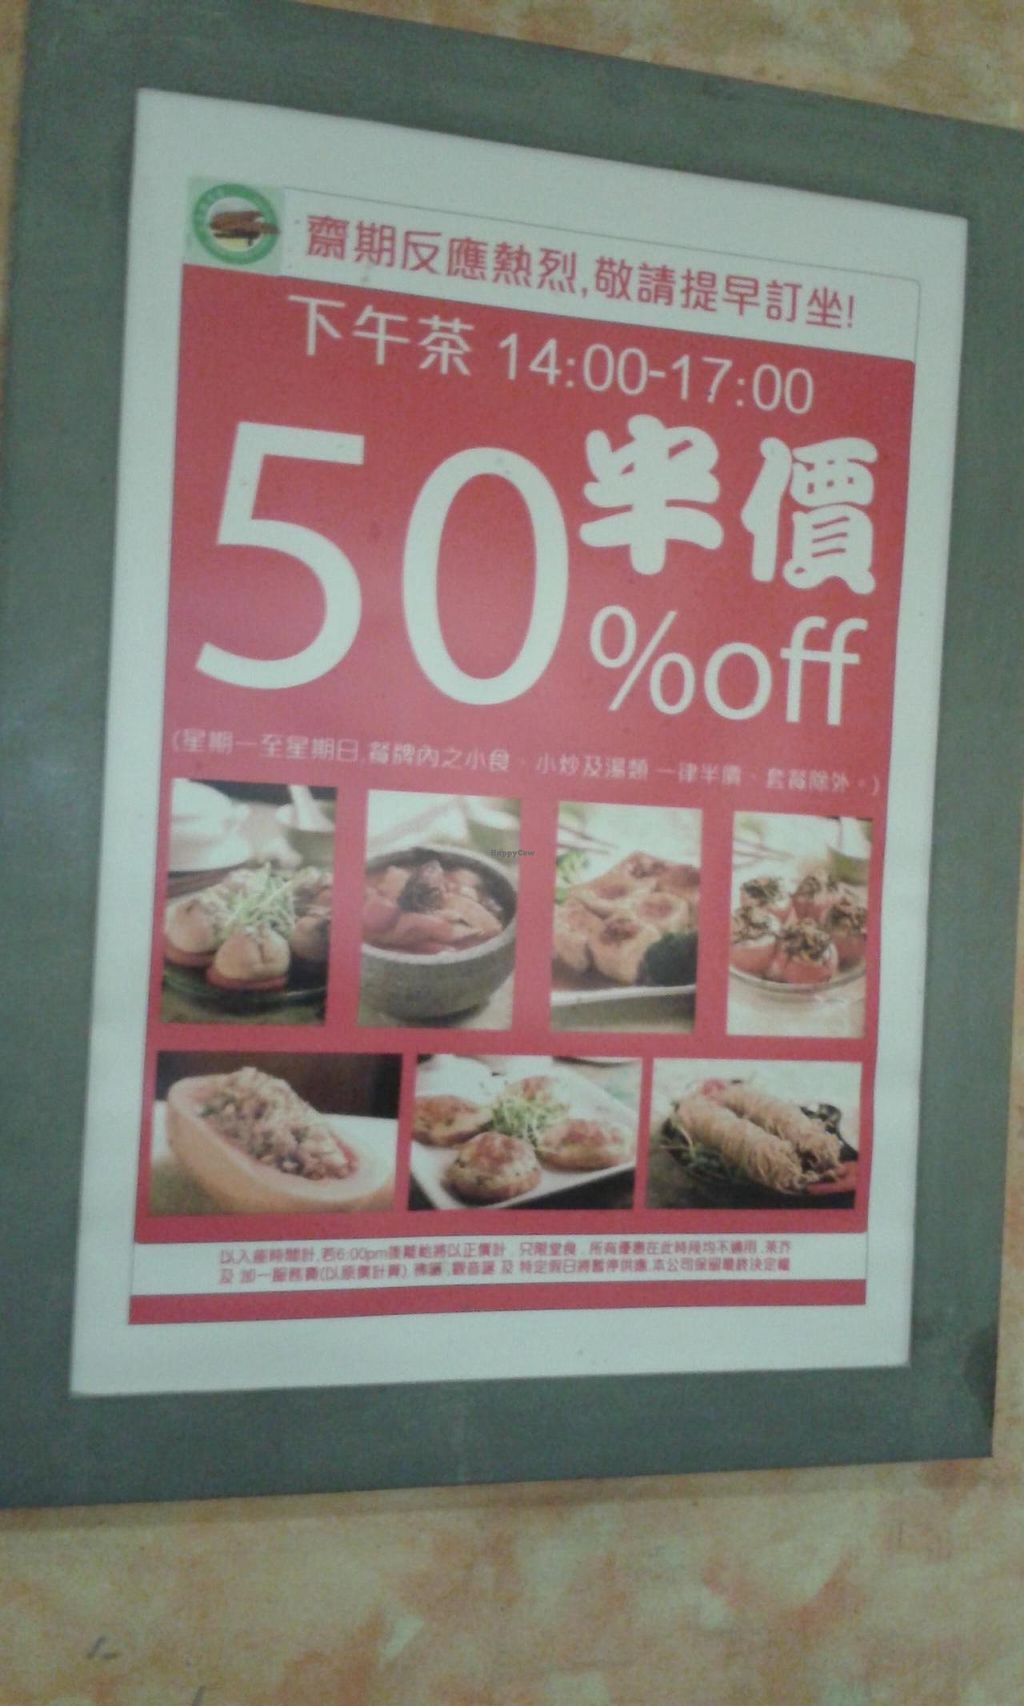 """Photo of Sino Vegetarian Restaurant  by <a href=""""/members/profile/Stevie"""">Stevie</a> <br/>1/2 price deal between 2 & 5 pm <br/> July 18, 2015  - <a href='/contact/abuse/image/11087/109751'>Report</a>"""